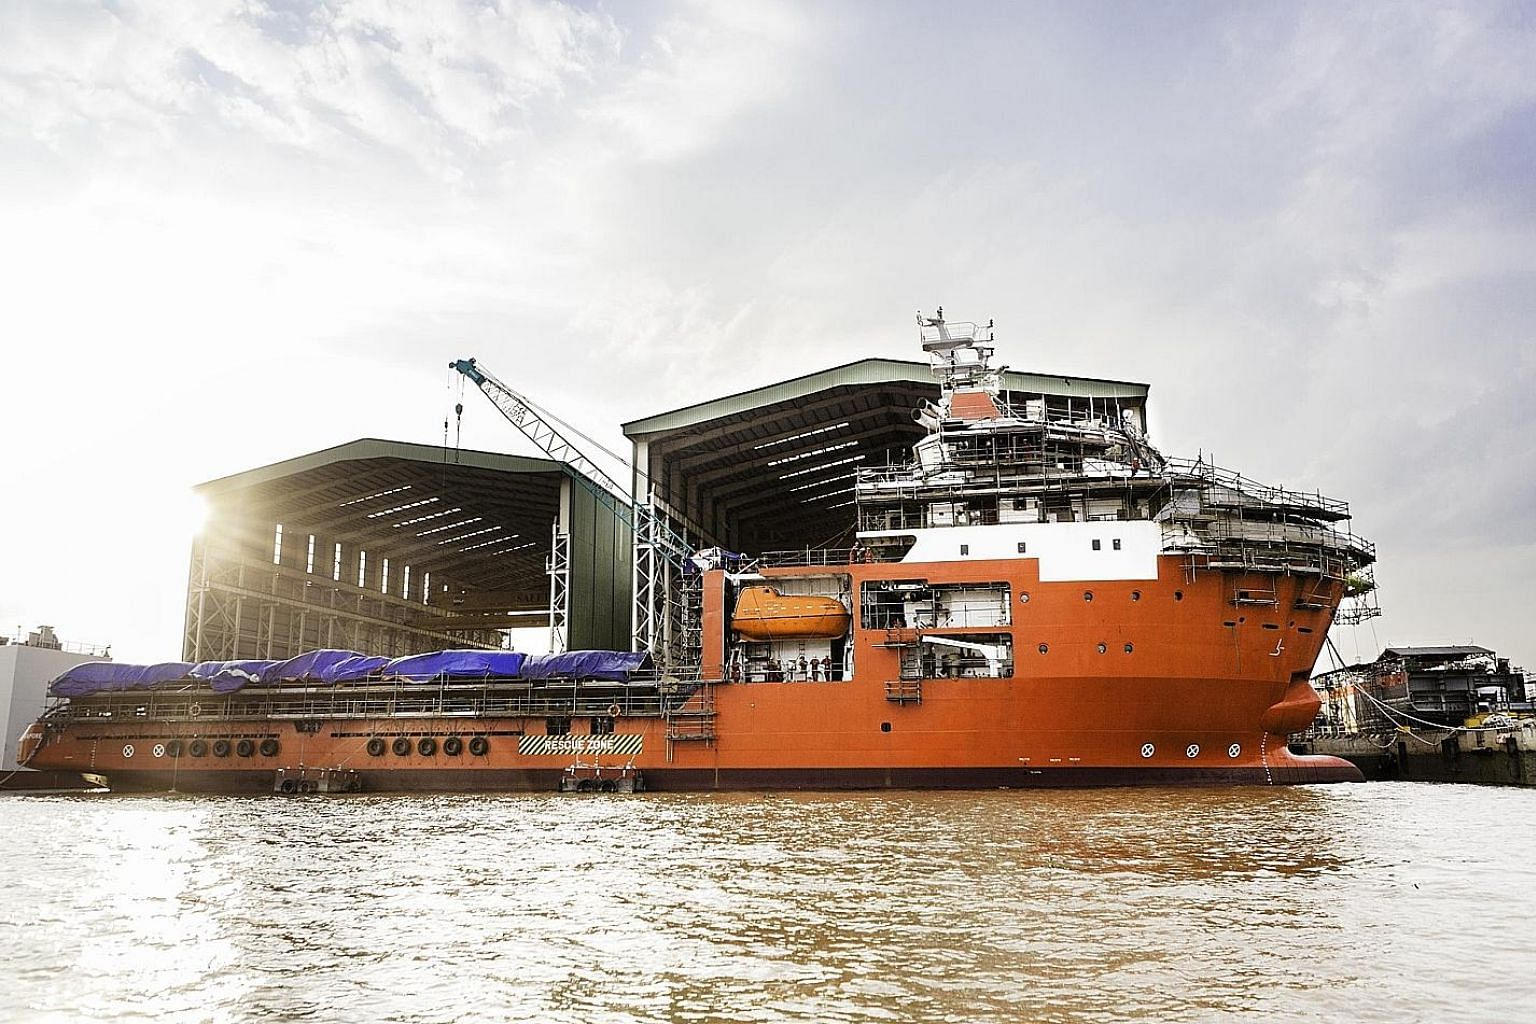 Triyards' biggest hit came from a US$45.1 million allowance for the impairment of assets.